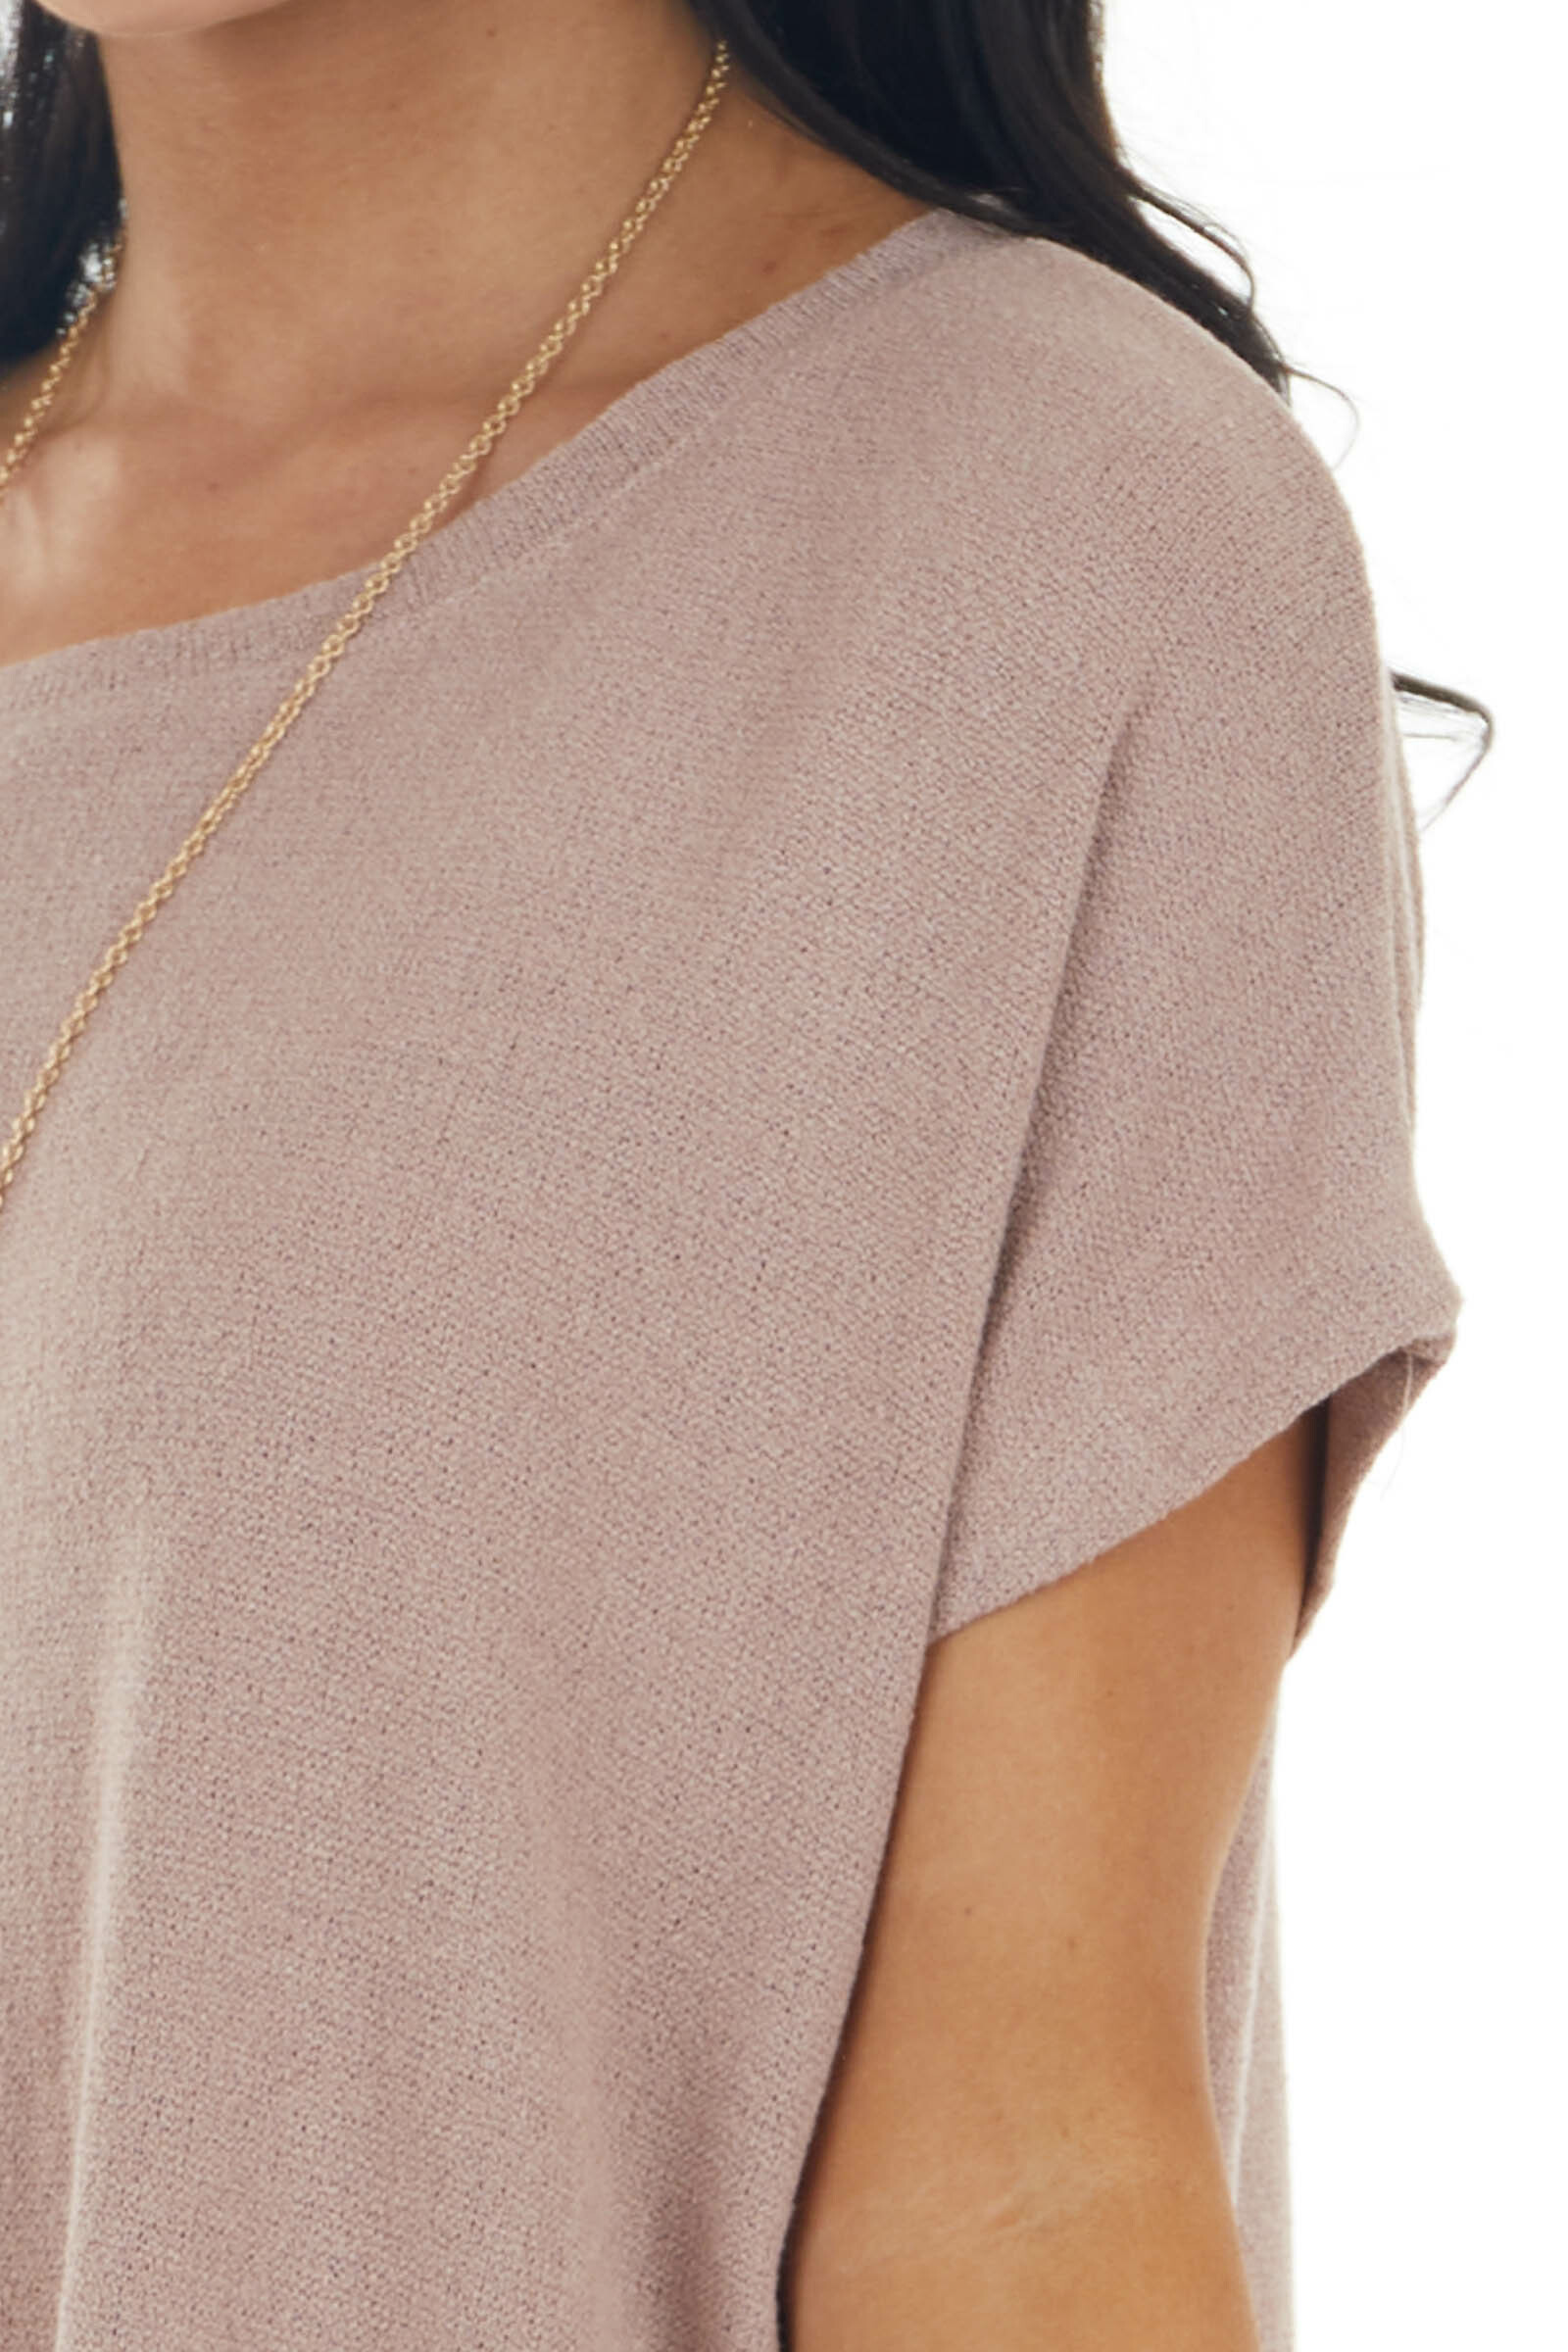 Rose Taupe Short Dolman Sleeve Lightweight Stretchy Knit Top